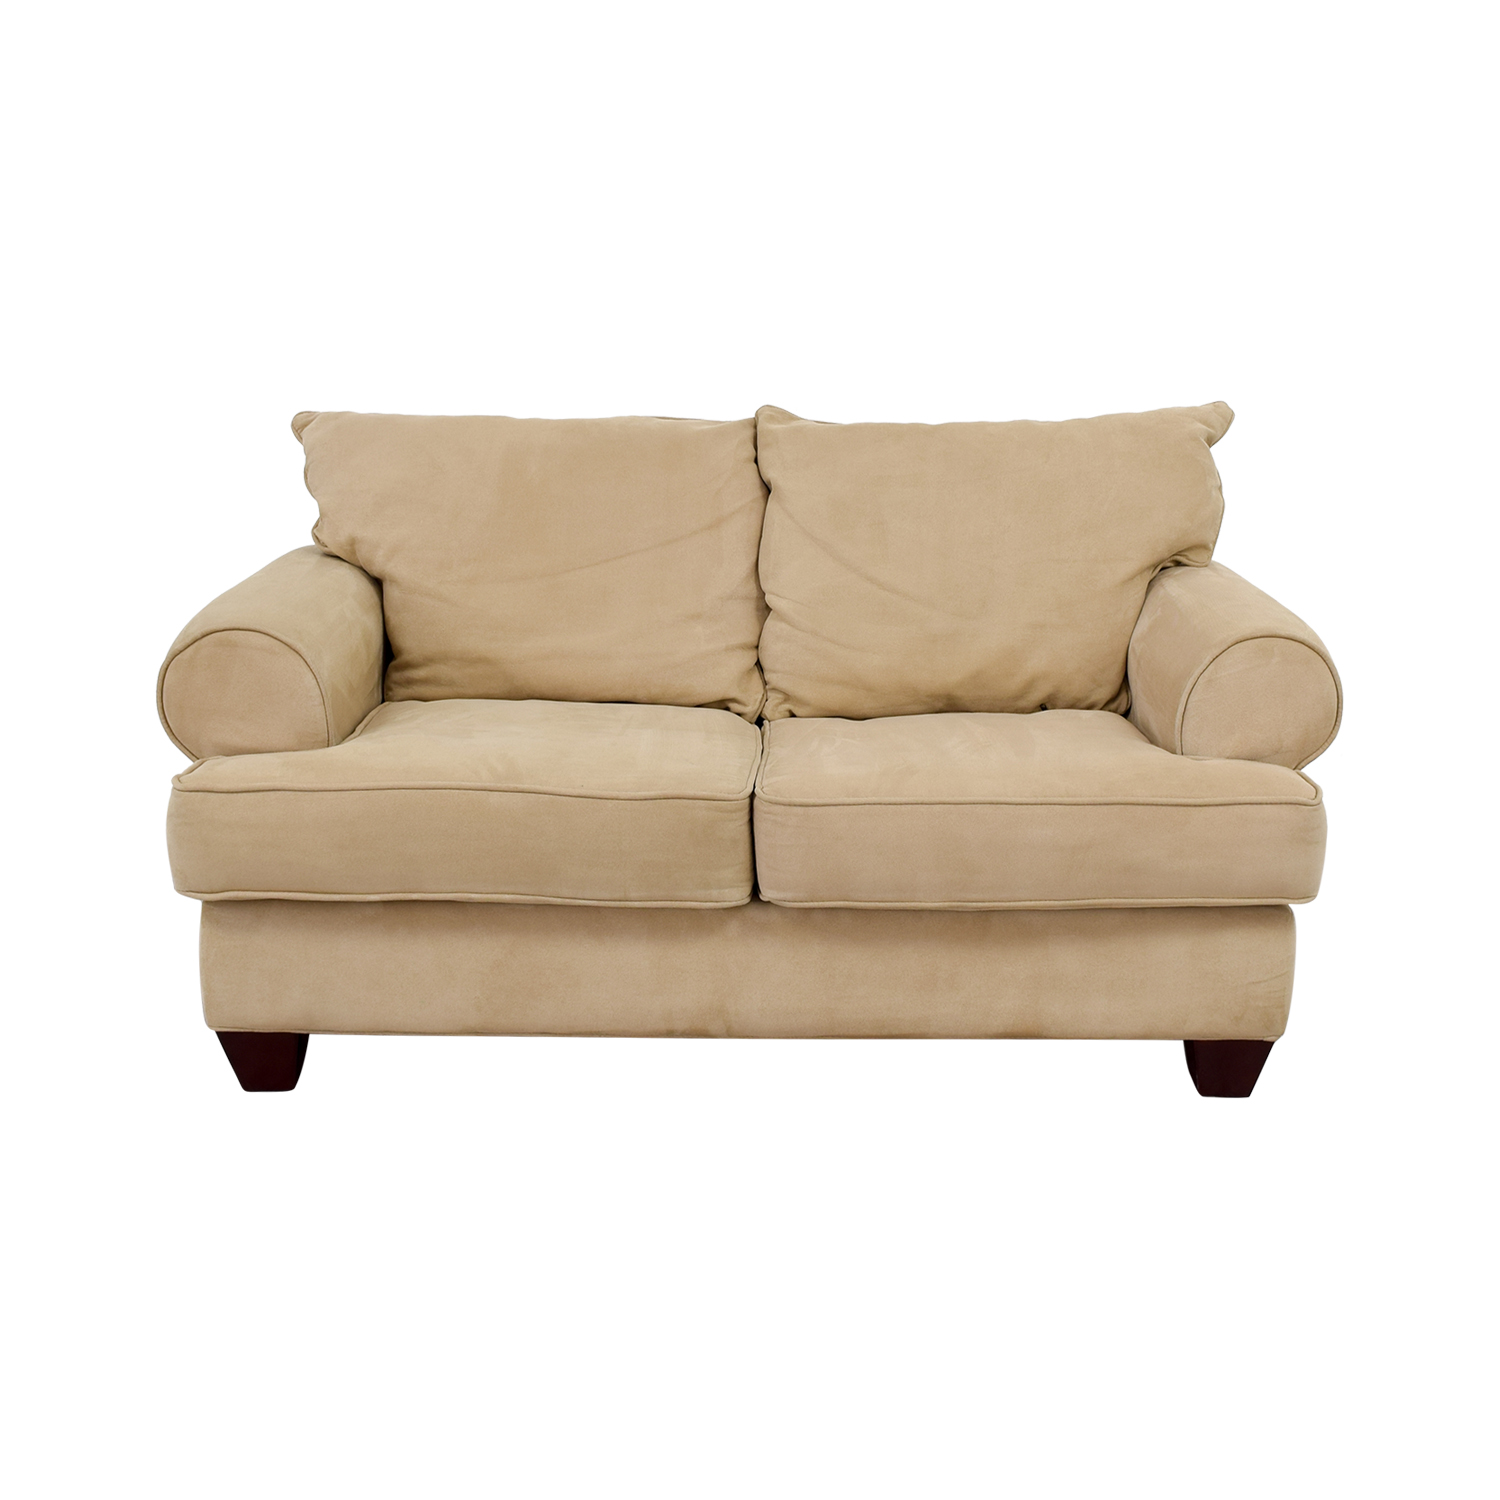 Modern Tan Loveseat used